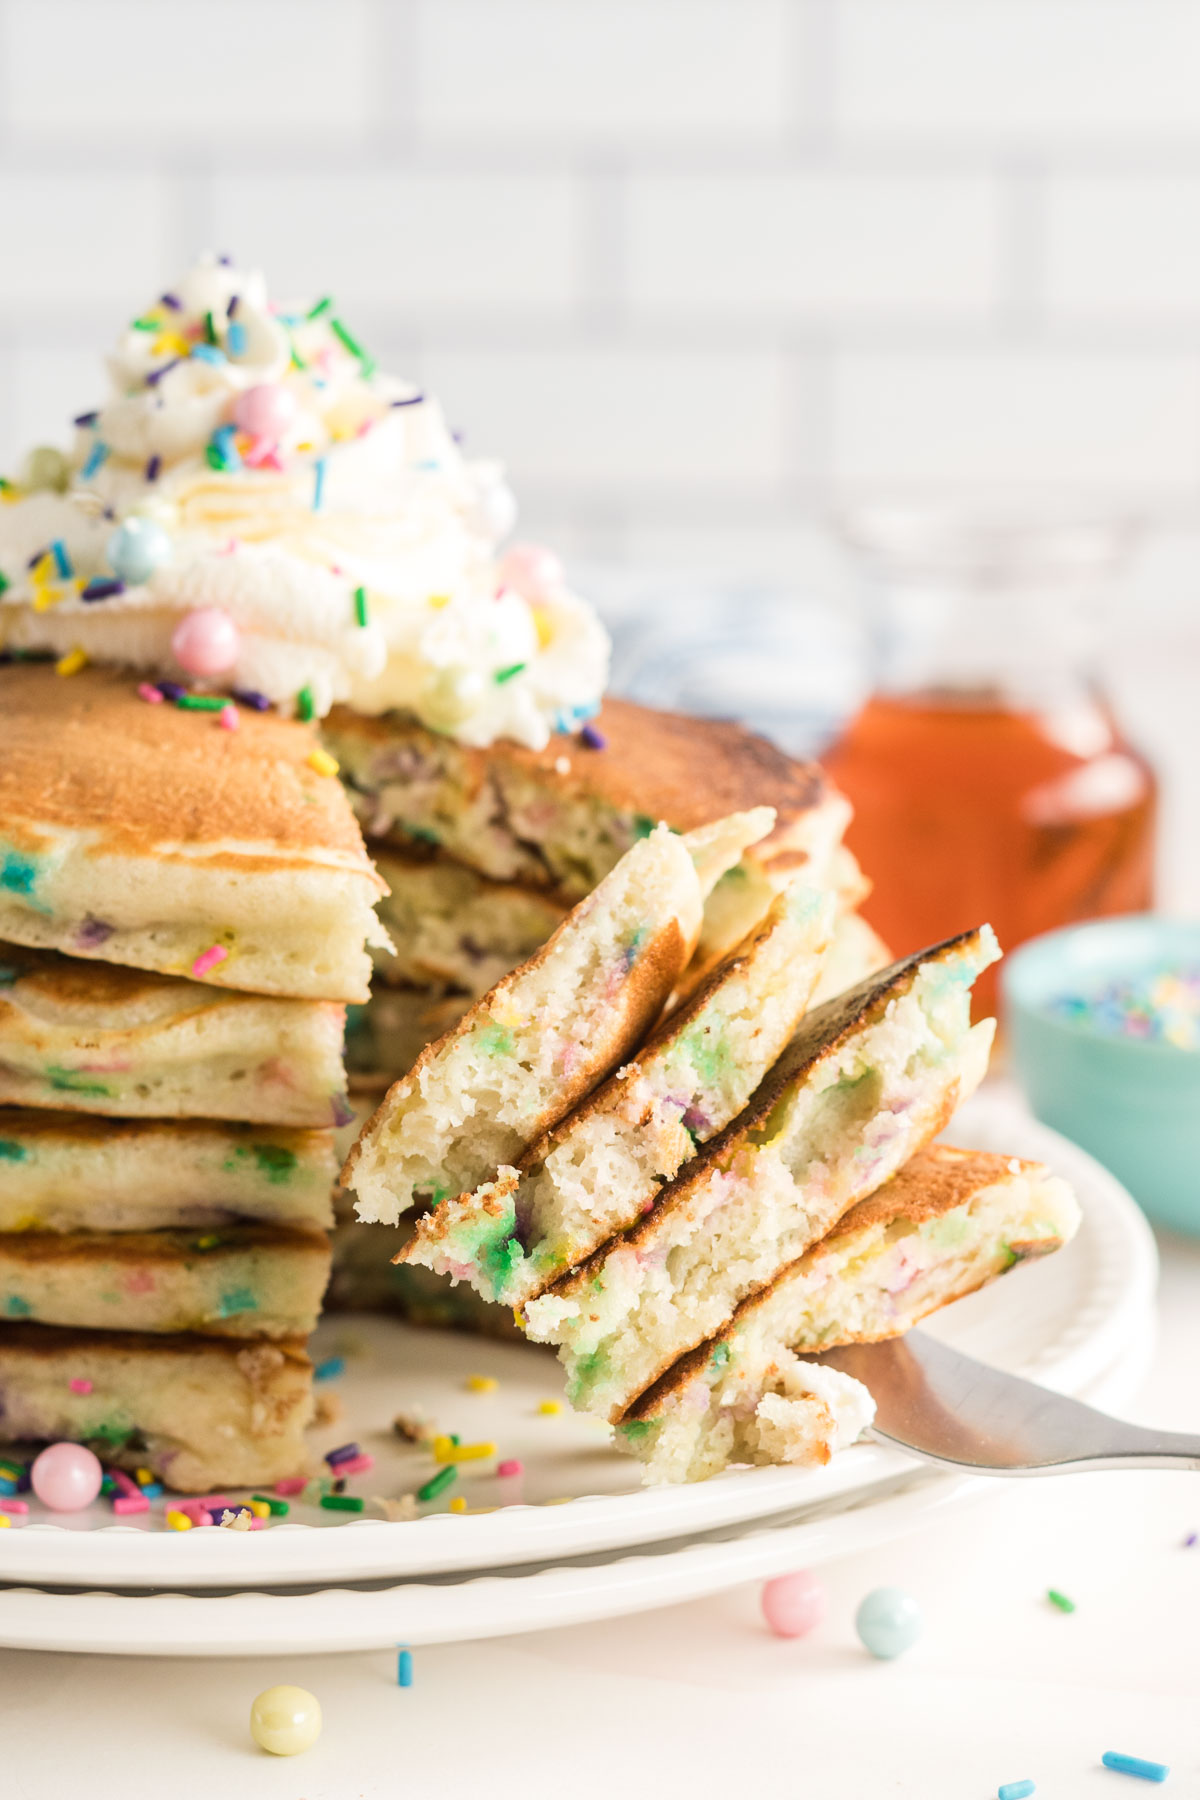 Bite of pancakes on a fork showing colourful sprinkles on inside of pancakes.